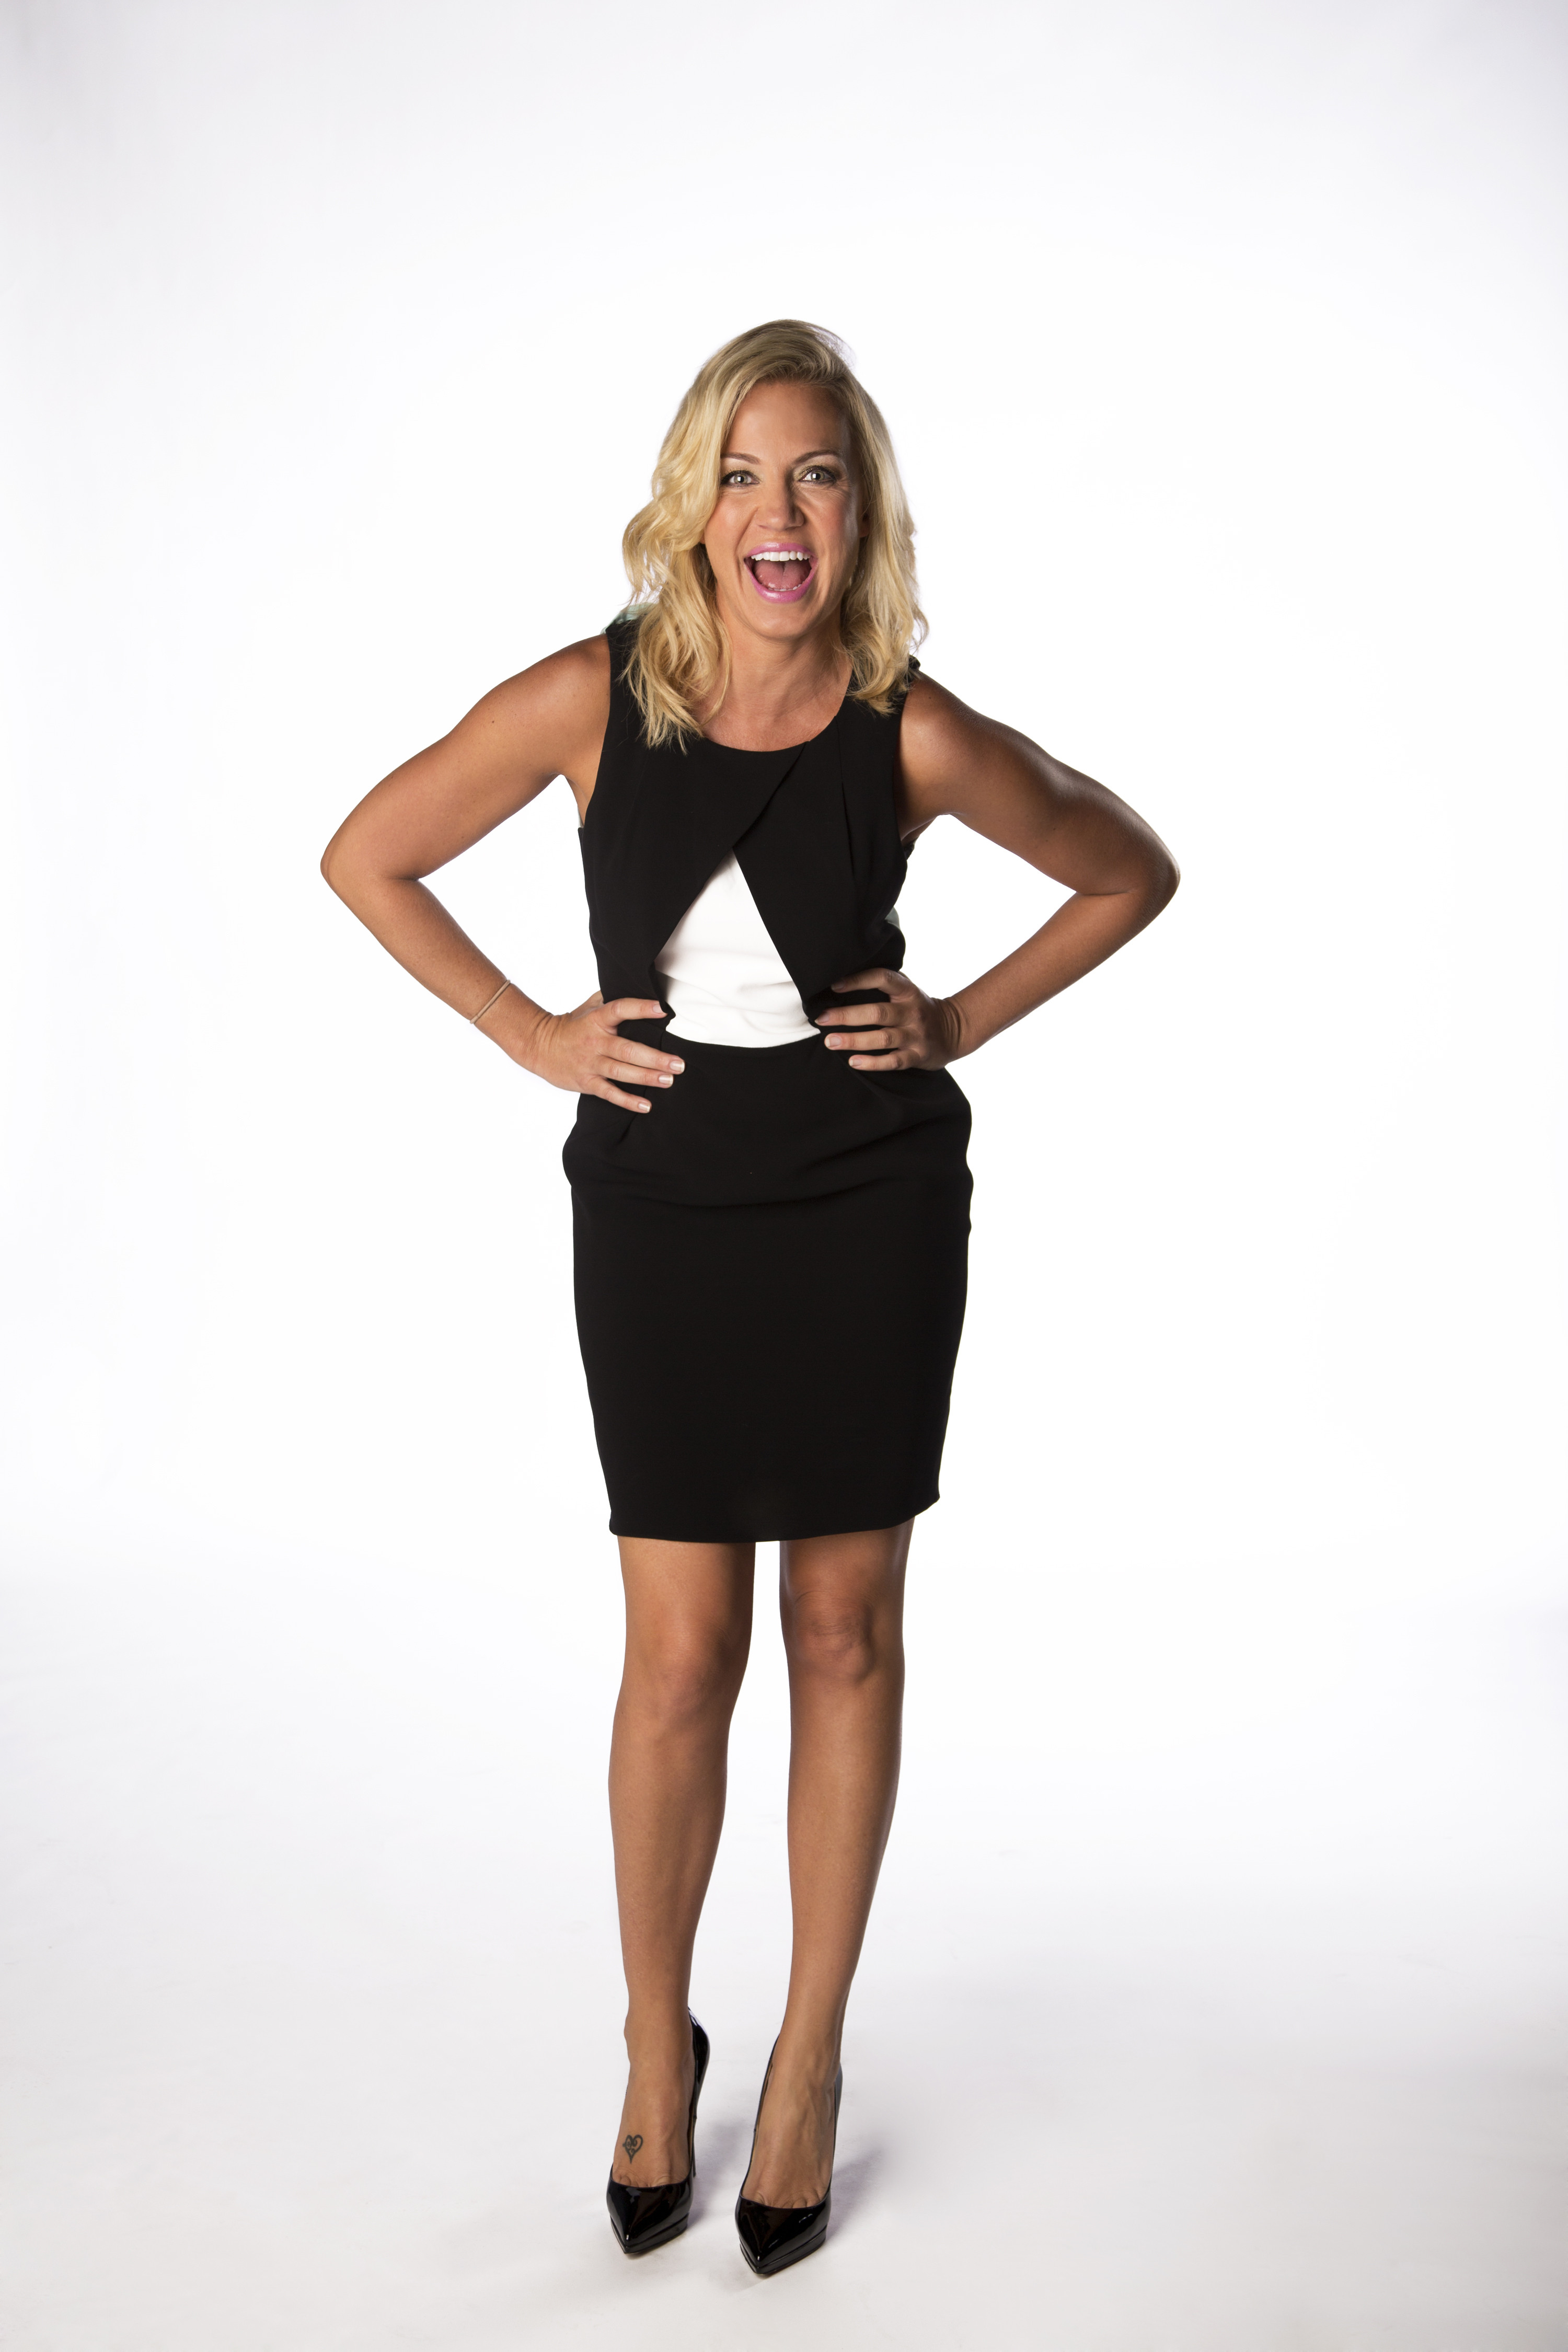 Michelle Beadle subtlely showing off her team spirit in San Antonio Spurs colors: black and white.